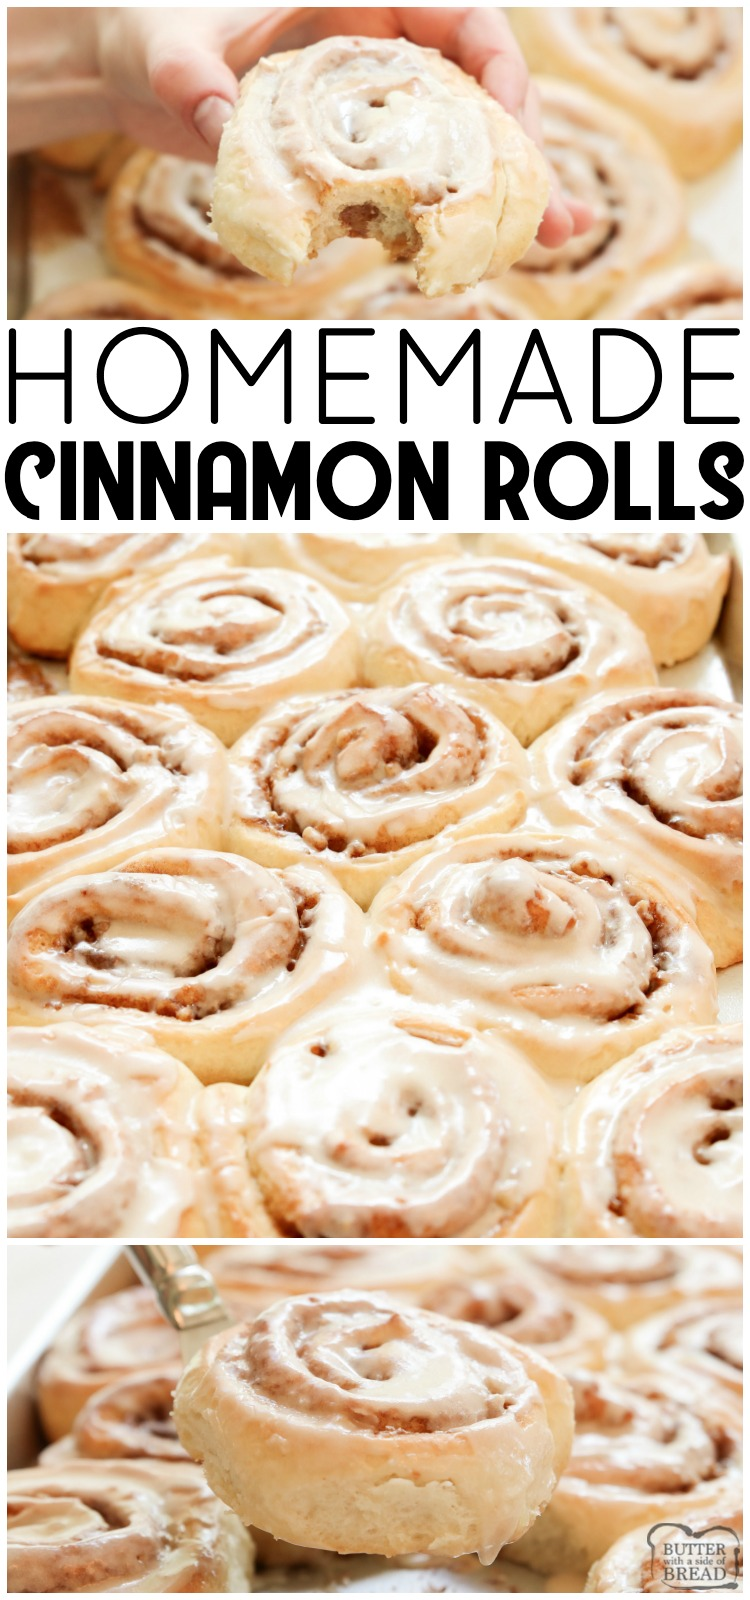 Cinnamon Rolls made from scratch that yield feather-light sweet rolls with pecans, cinnamon and a lovely vanilla glaze. Best cinnamon roll recipe ever! #cinnamonrolls @homemade #rolls #bread #breakfast #sweetrolls #cinnamon #recipe from BUTTER WITH A SIDE OF BREAD